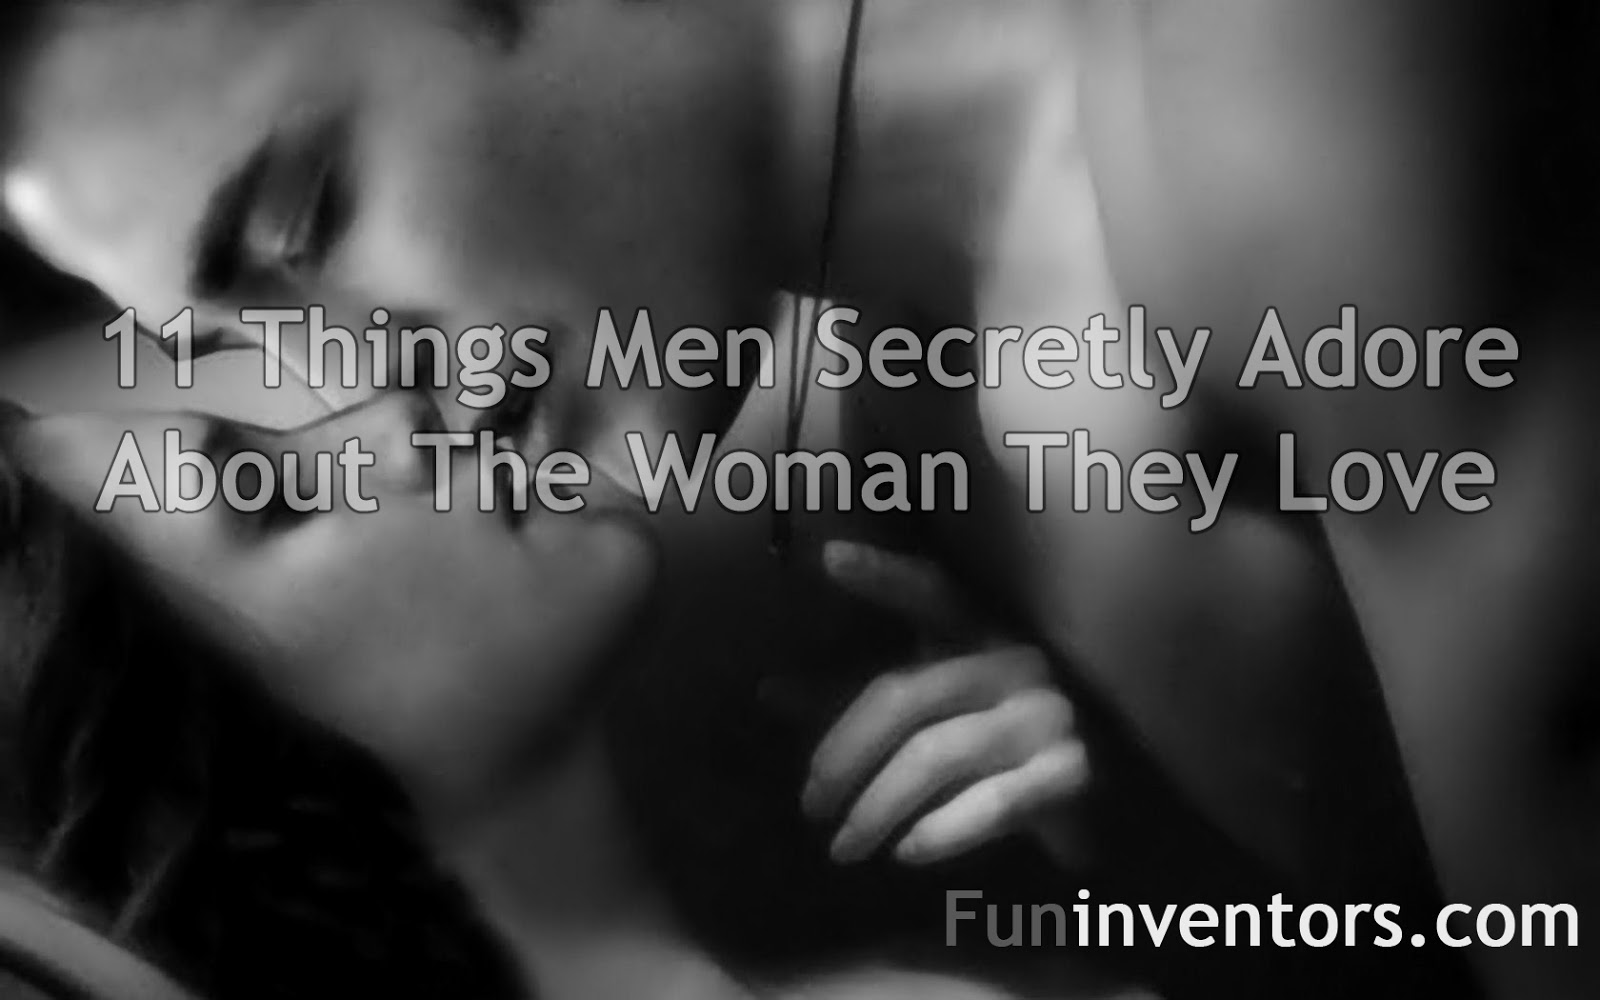 11-things-men-secretly-adore-about-women-they-love